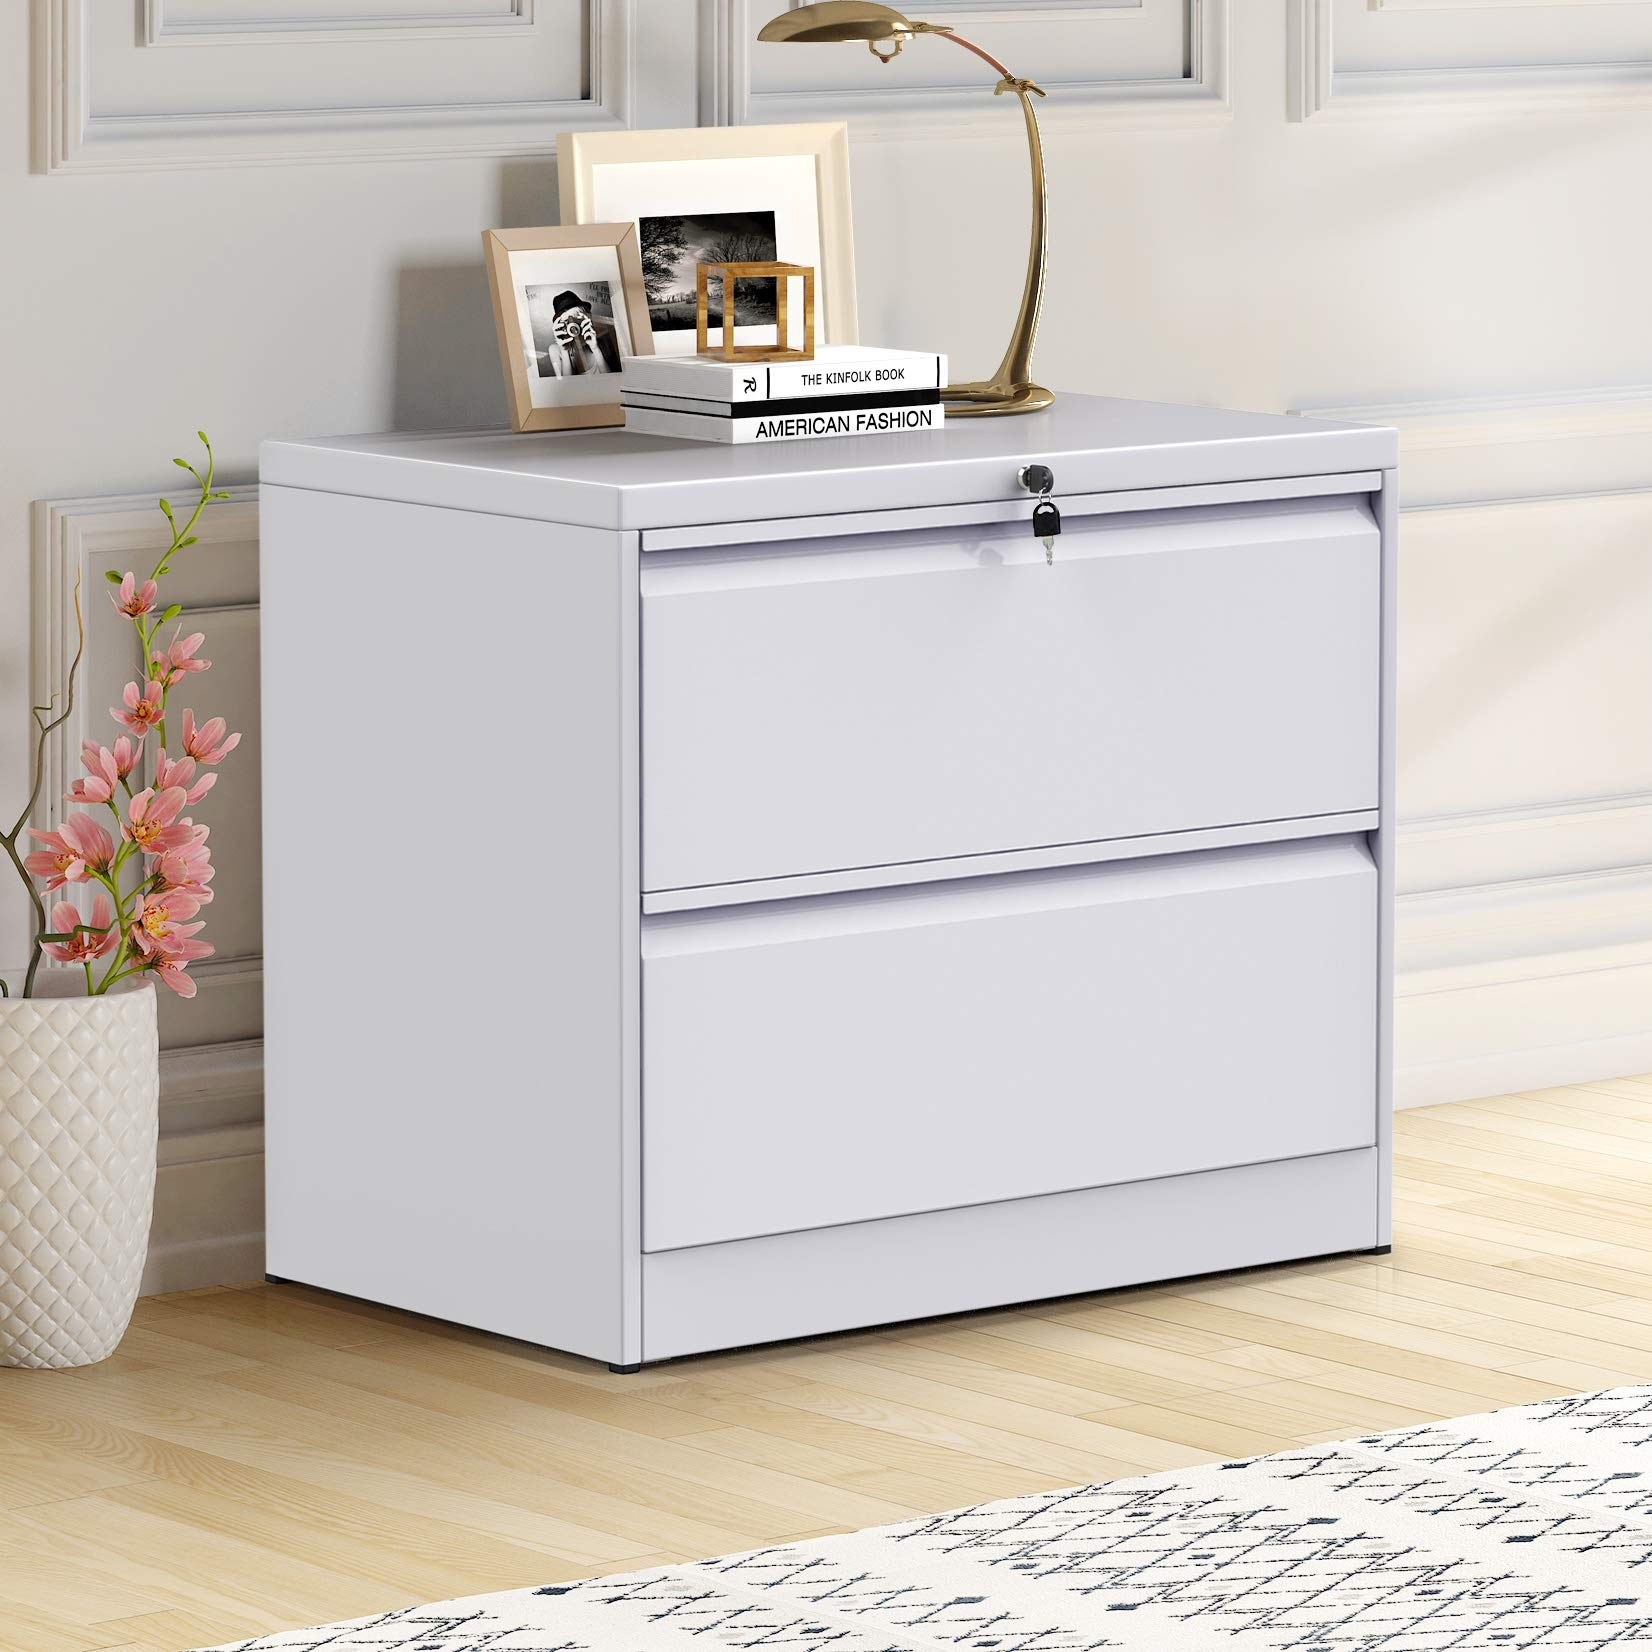 ModernLuxe Heavy-Duty Lateral File Cabinet 2-Drawer with Locks, White by ModernLuxe